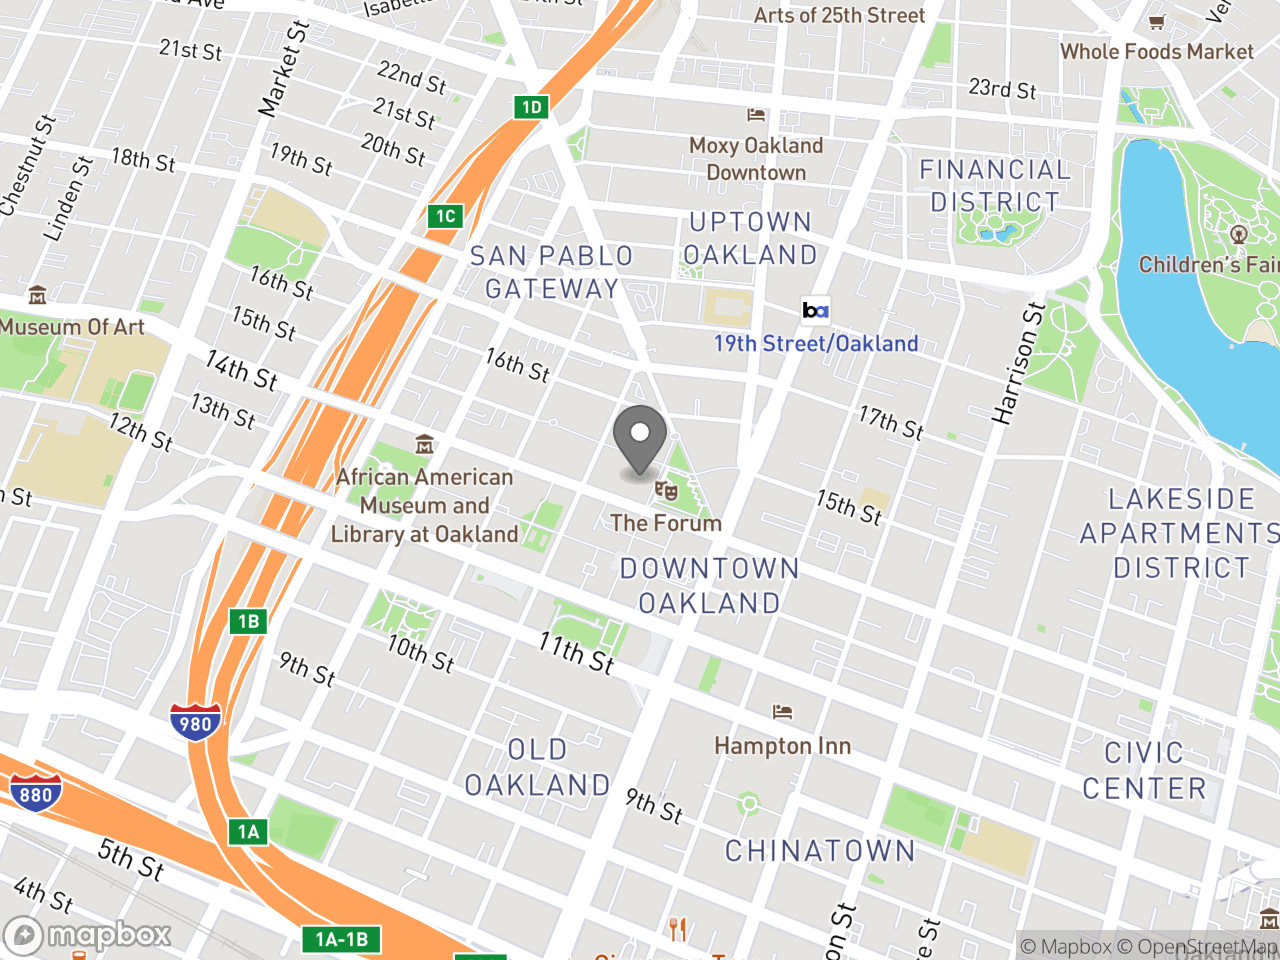 Map location for Cultural Affairs Commission, located at 1 Frank H Ogawa Plaza  in Oakland, CA 94612